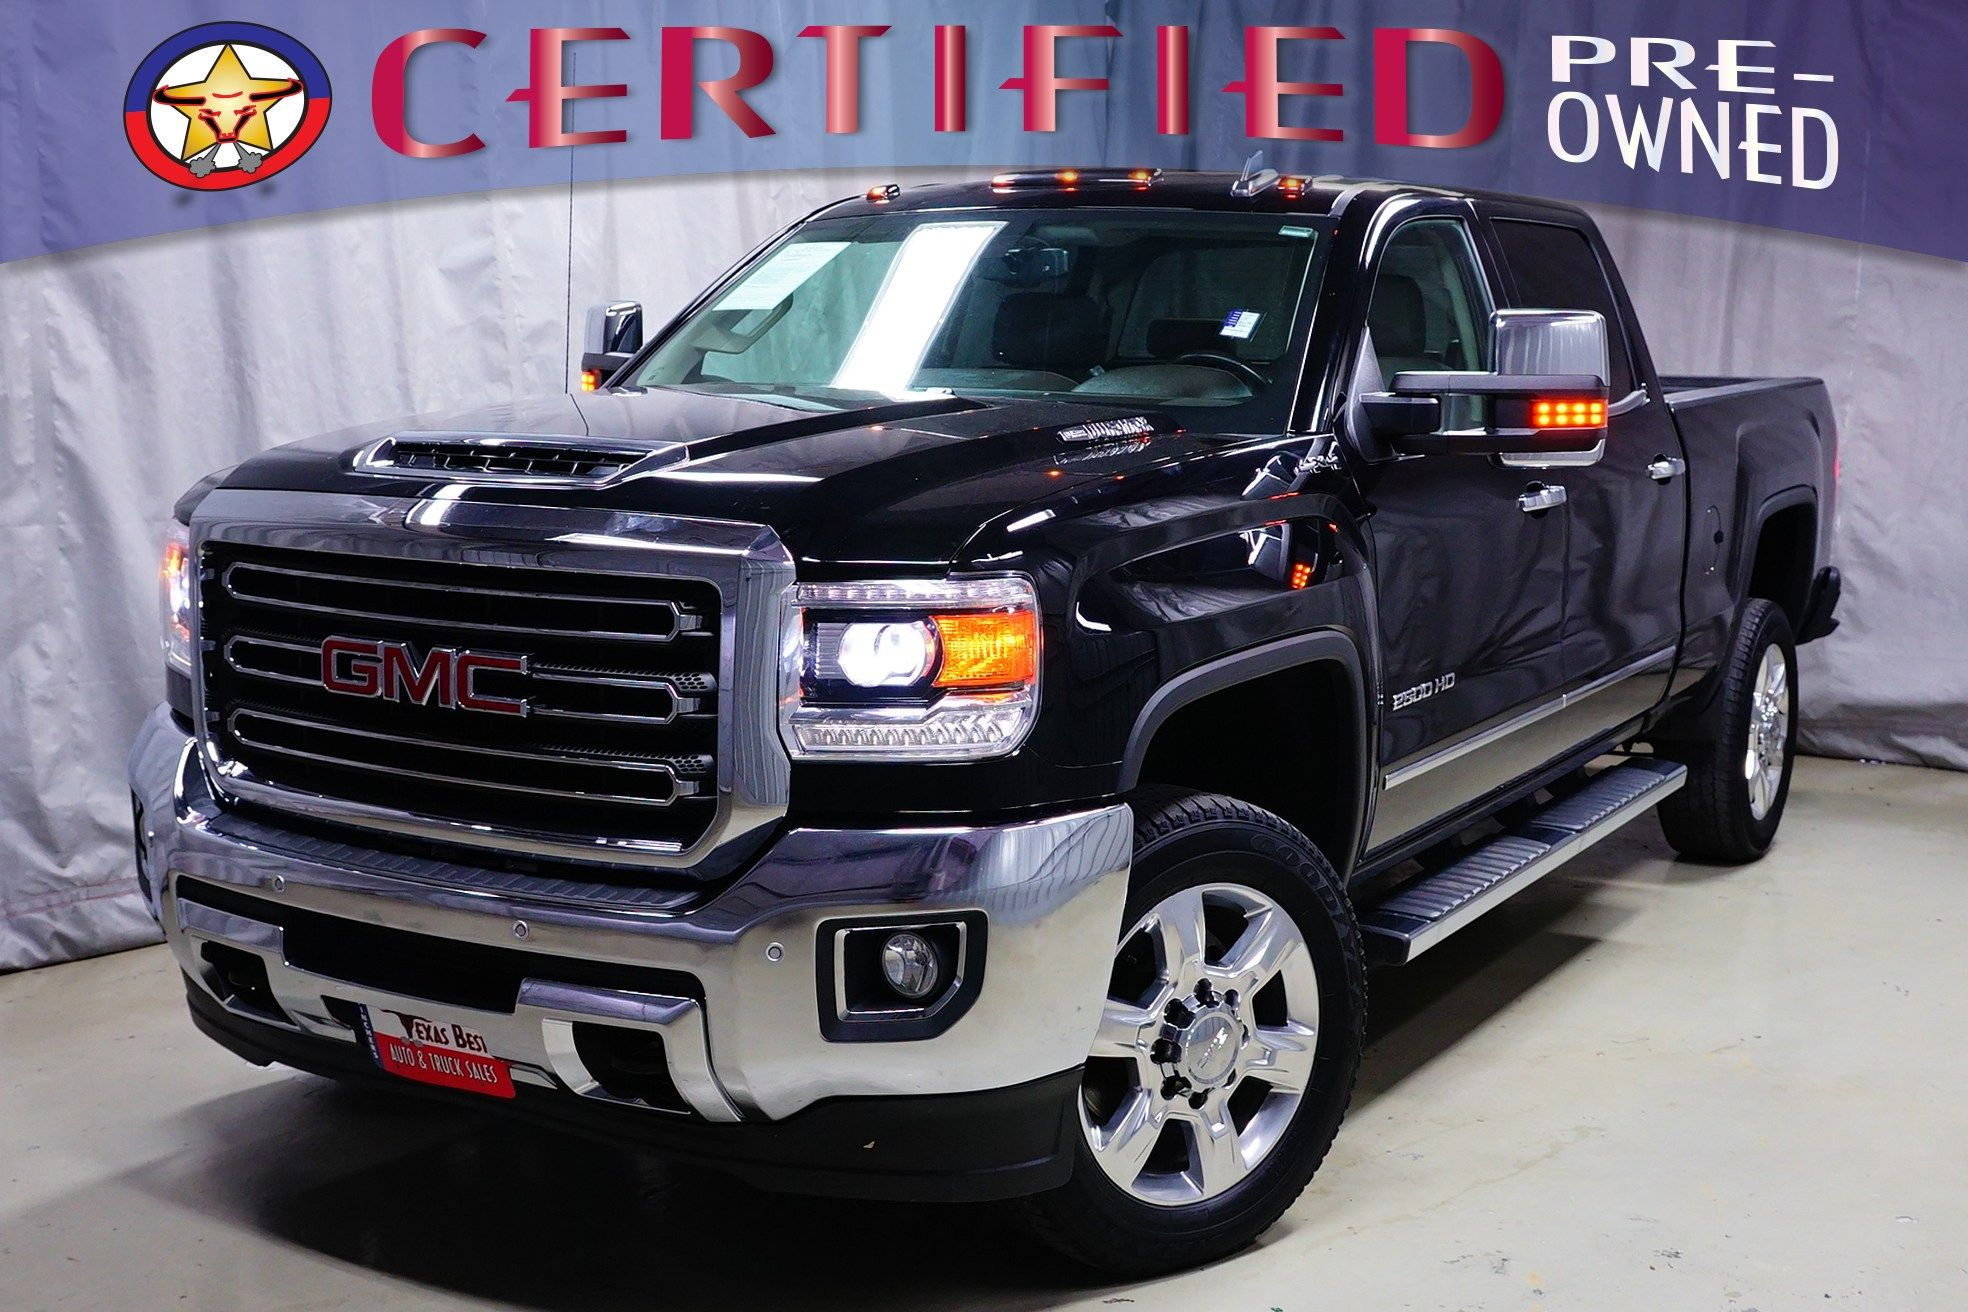 2017 Gmc Sierra 2500hd Slt 2017 Gmc Sierra 2500hd Gmc Sierra 2500hd Gmc